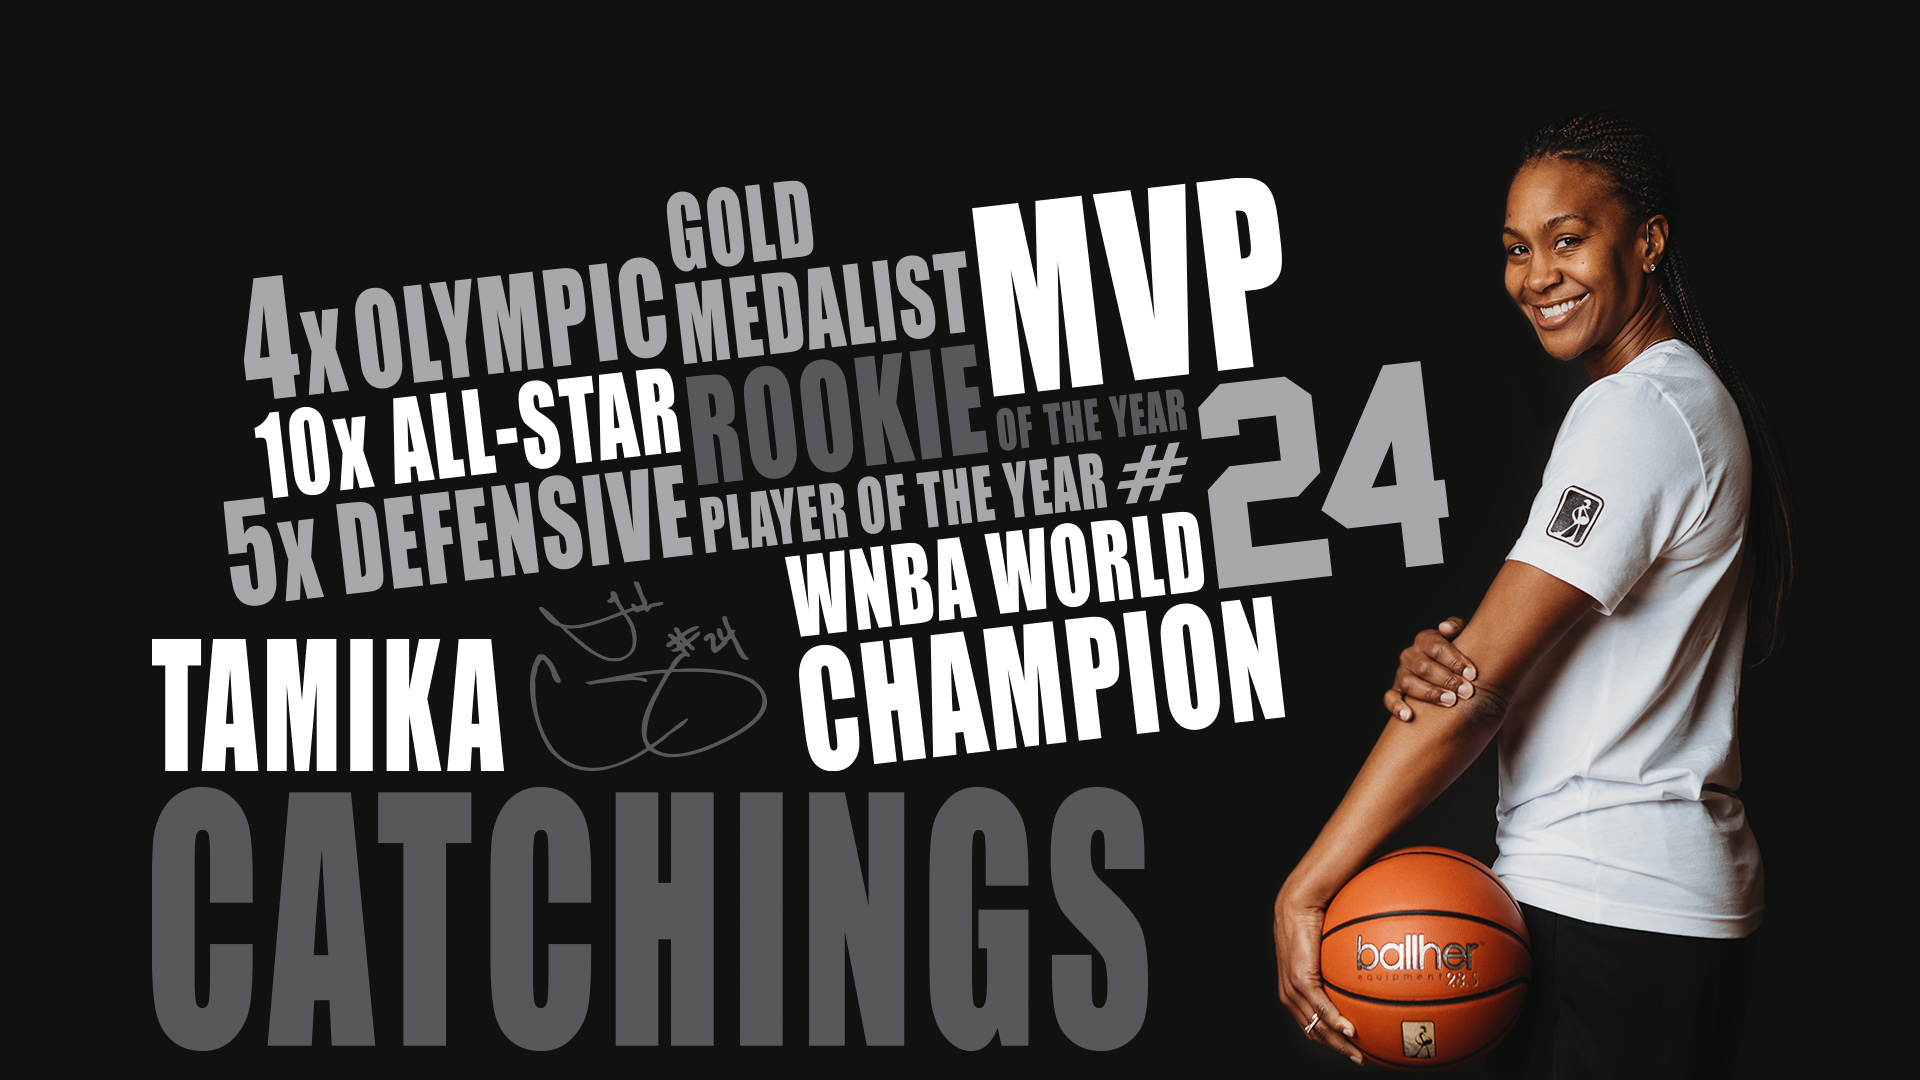 NEW-Home-Page-Pic_1920x1080_TAMIKA-CATHINGS